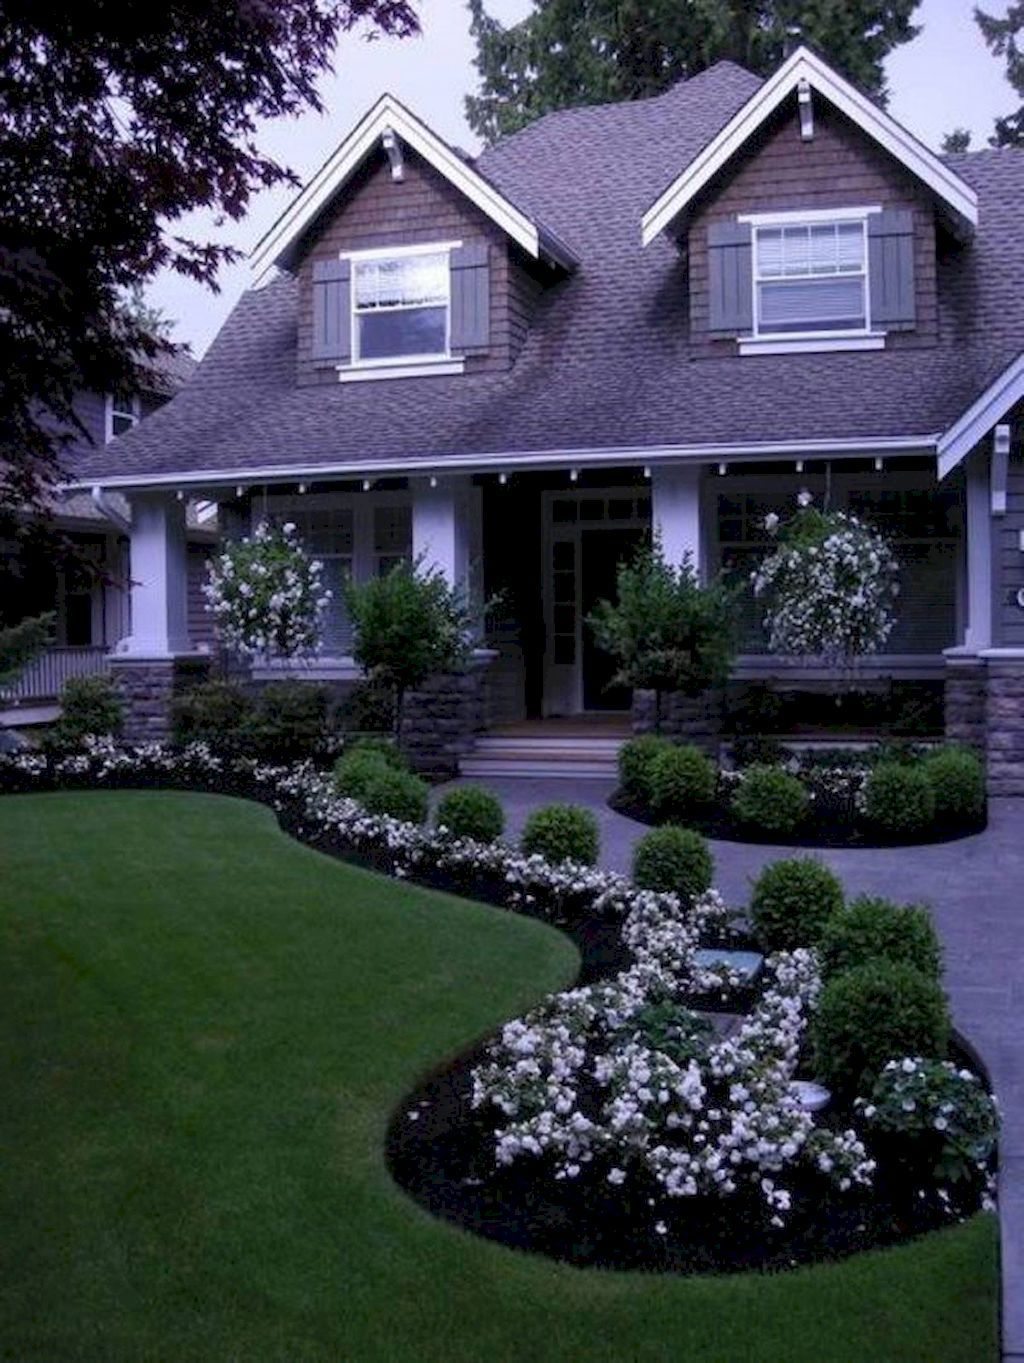 40 beautiful front yard landscaping ideas yard for Small front garden designs